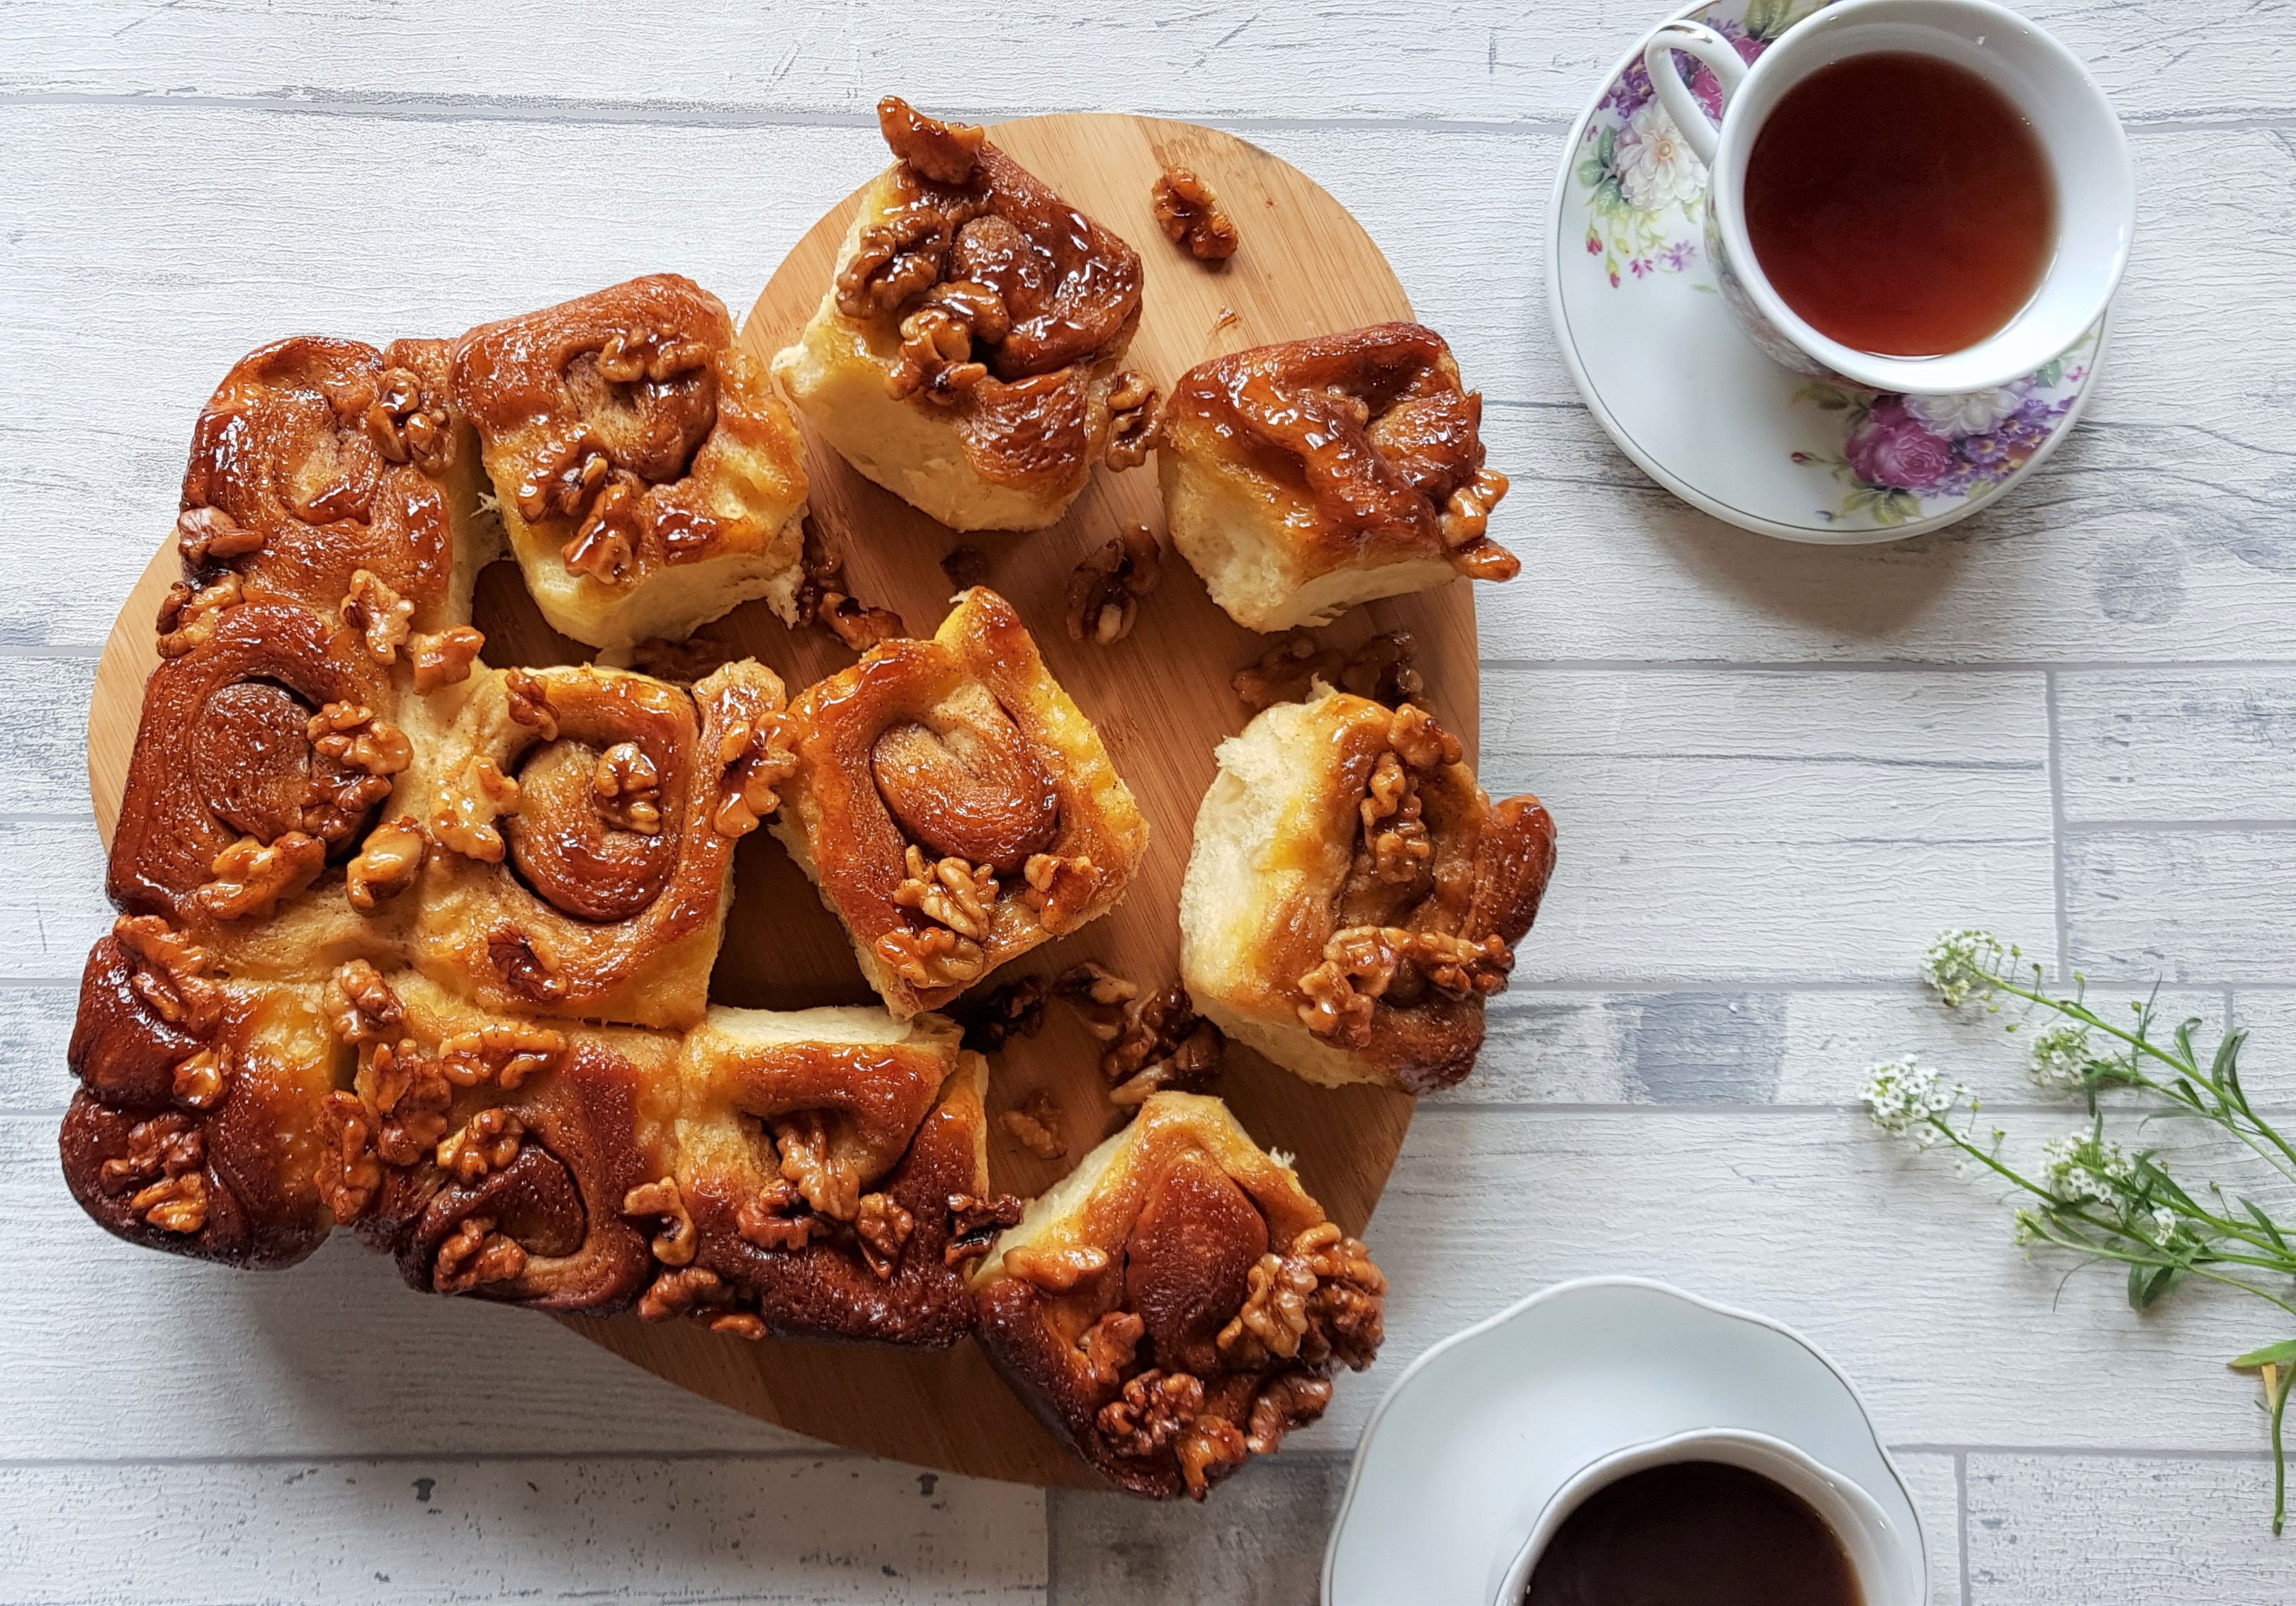 Sticky cinnamon and walnut breakfast buns